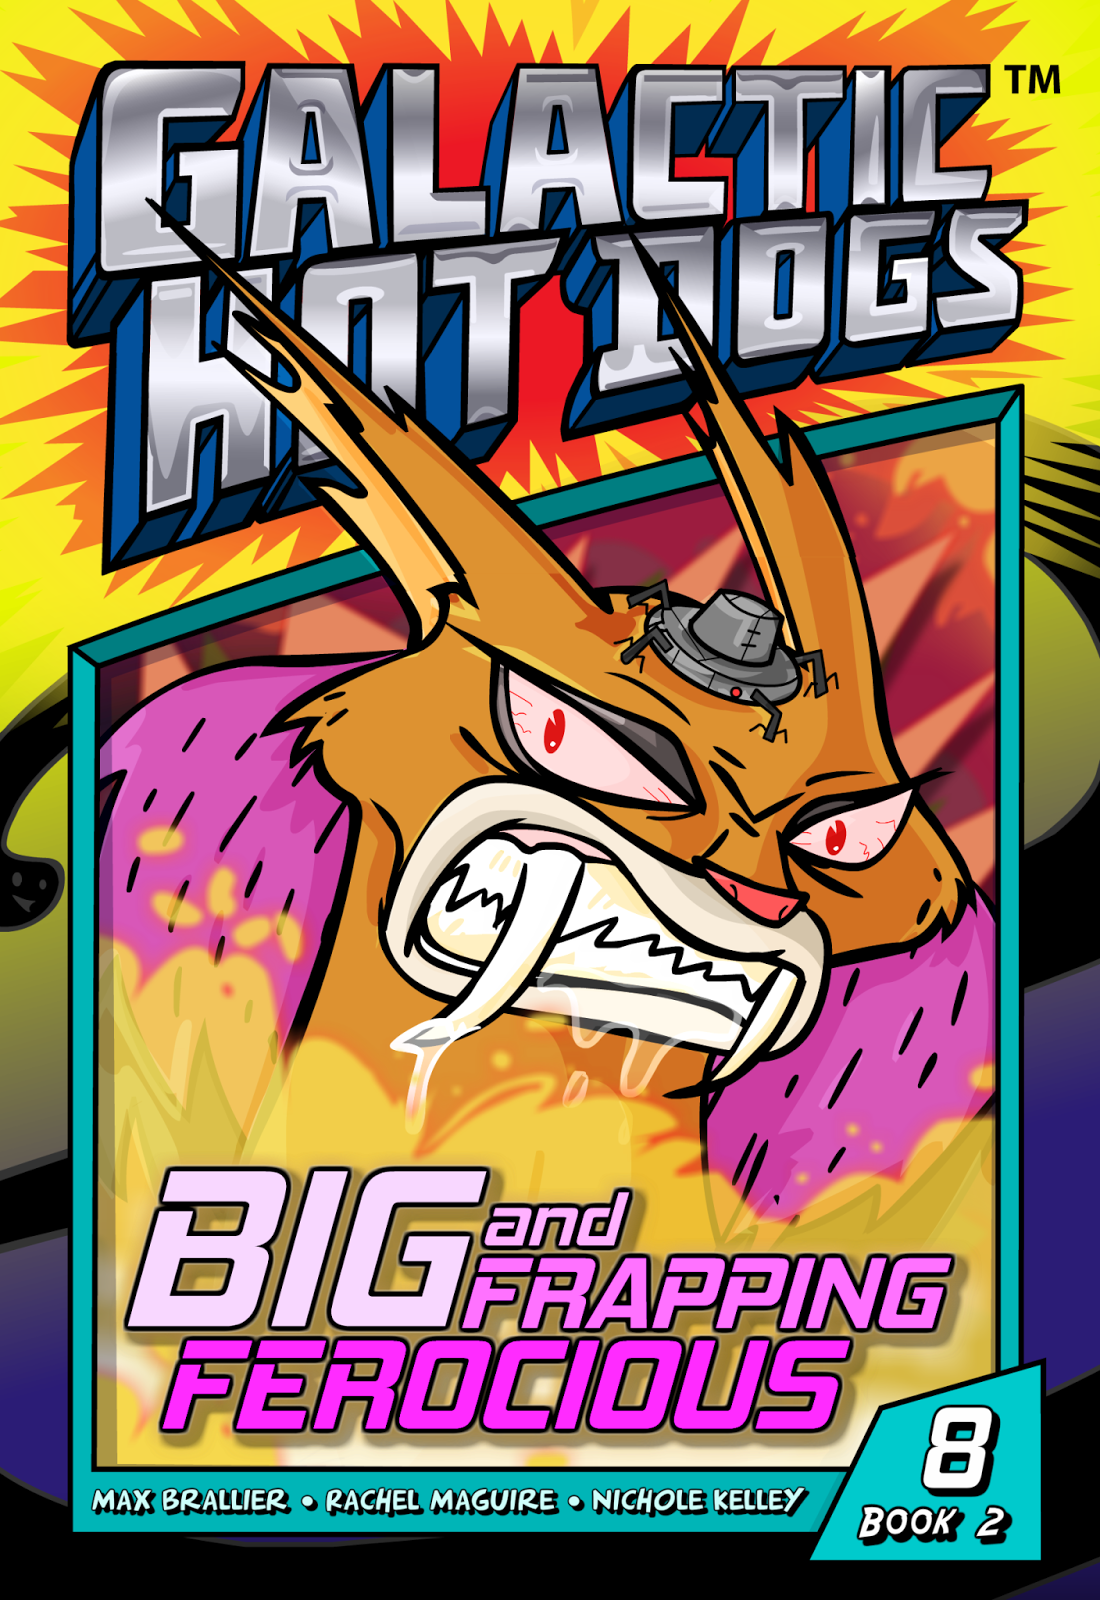 Galactic Hot Dogs: Book Two - Chapter 8 - Big and Frapping Ferocious.png